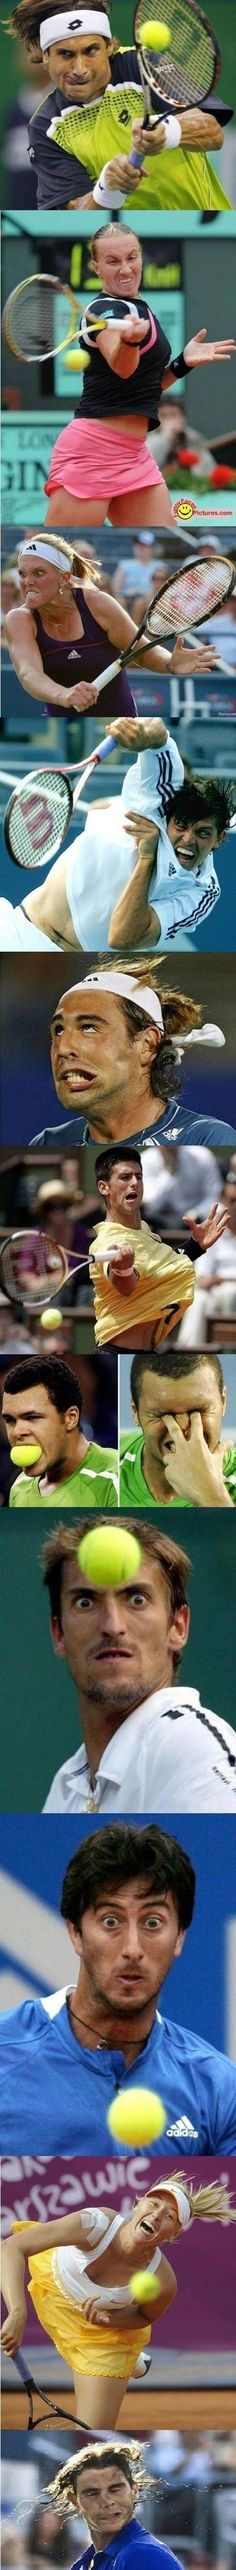 Got a case of tennis face? These people do! Lol!